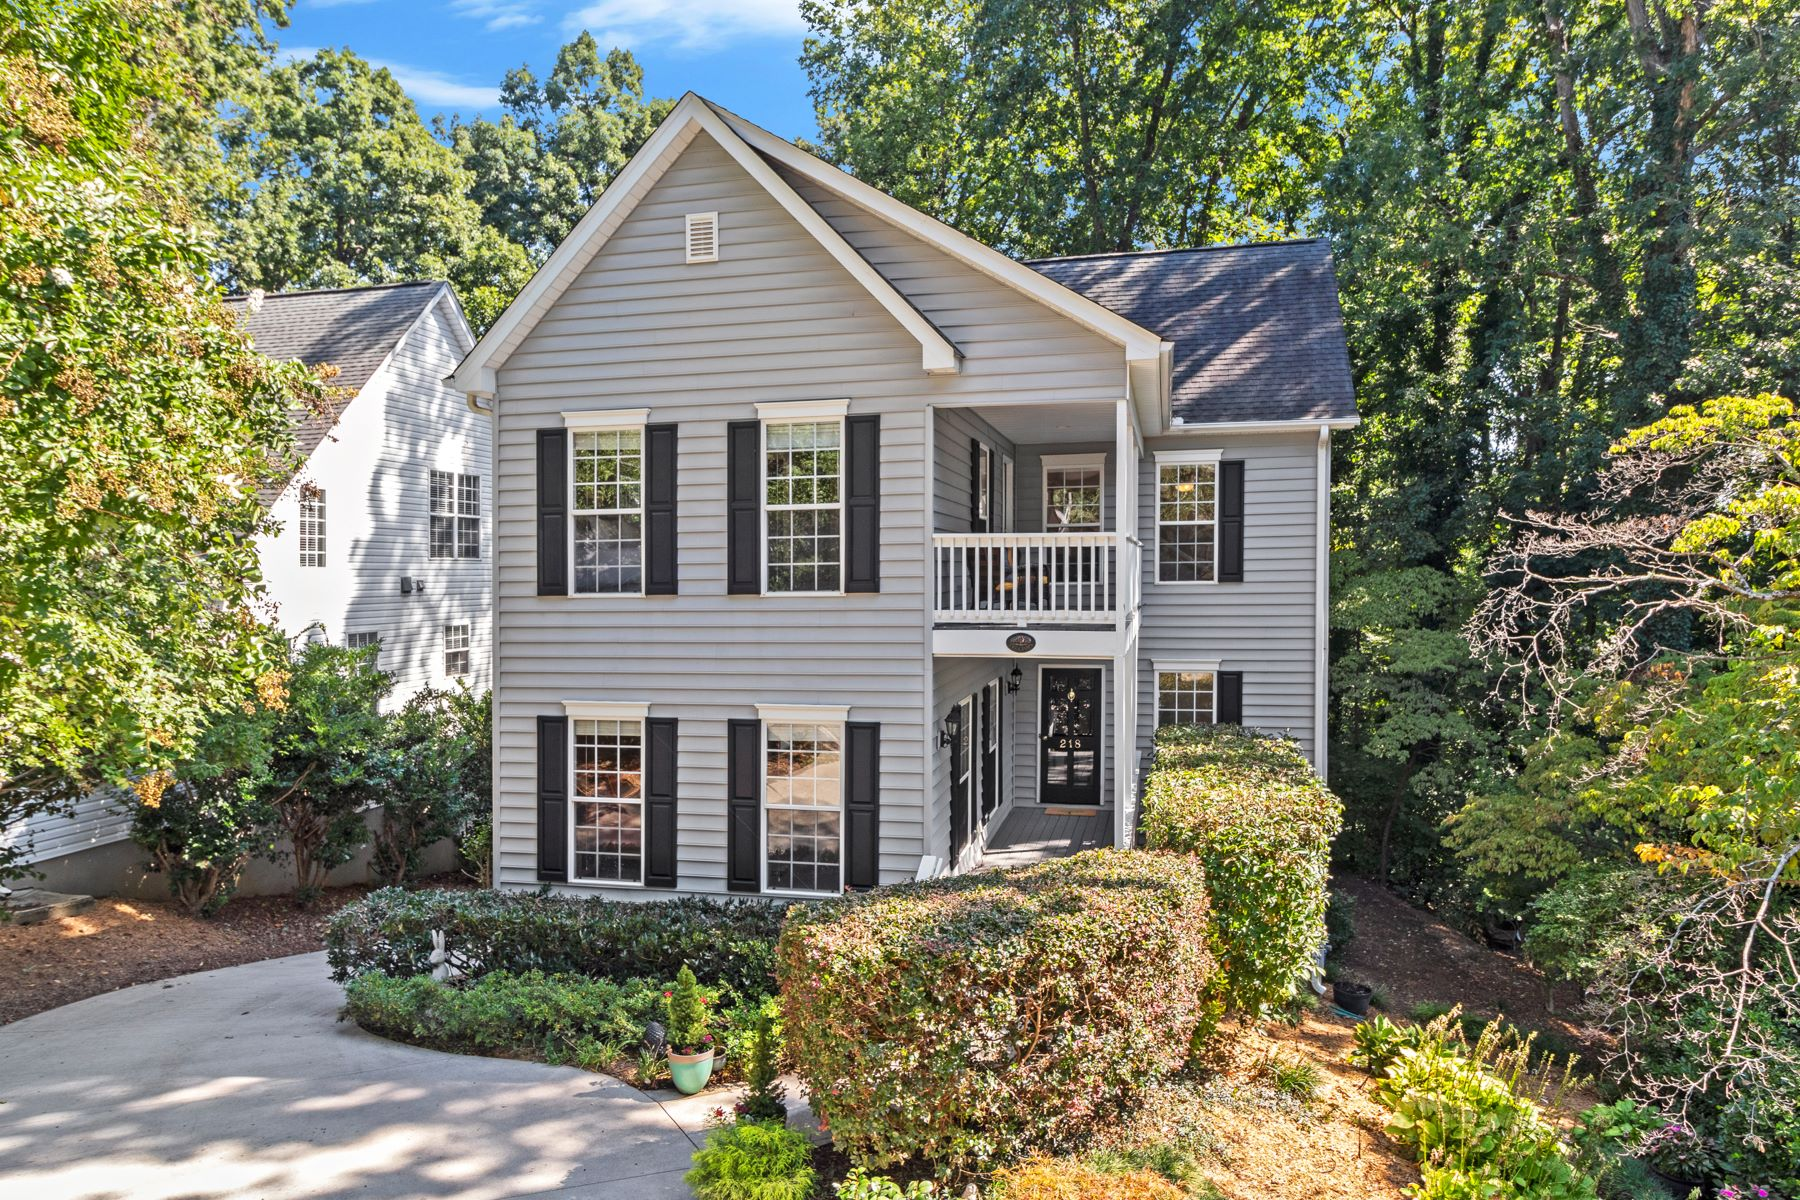 Single Family Homes のために 売買 アット Charlestonian Charm in Augusta Road Area 218 East Augusta Place, Greenville, サウスカロライナ 29605 アメリカ